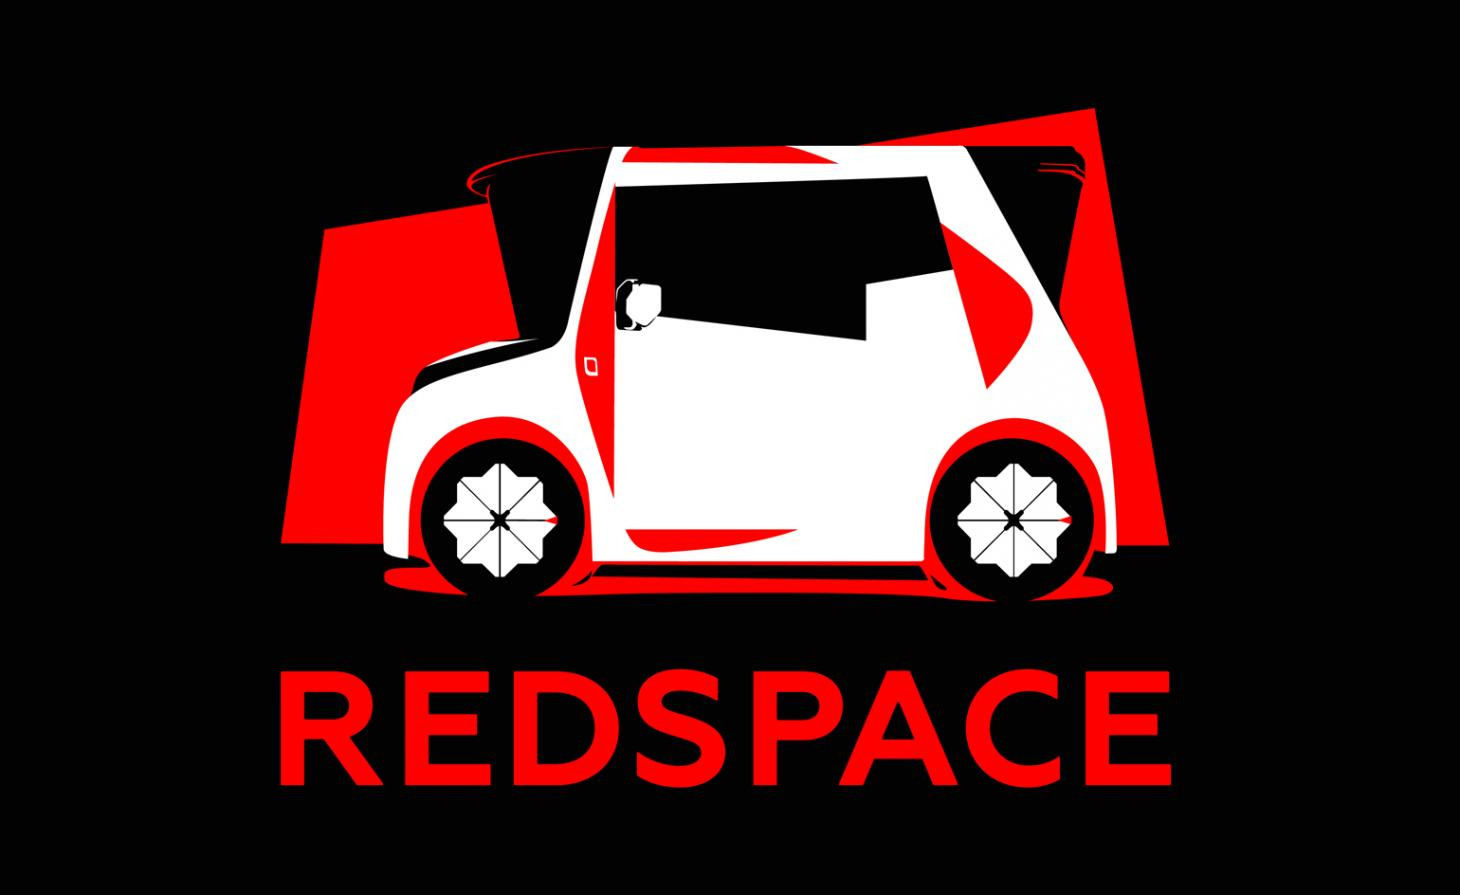 Project Redspace